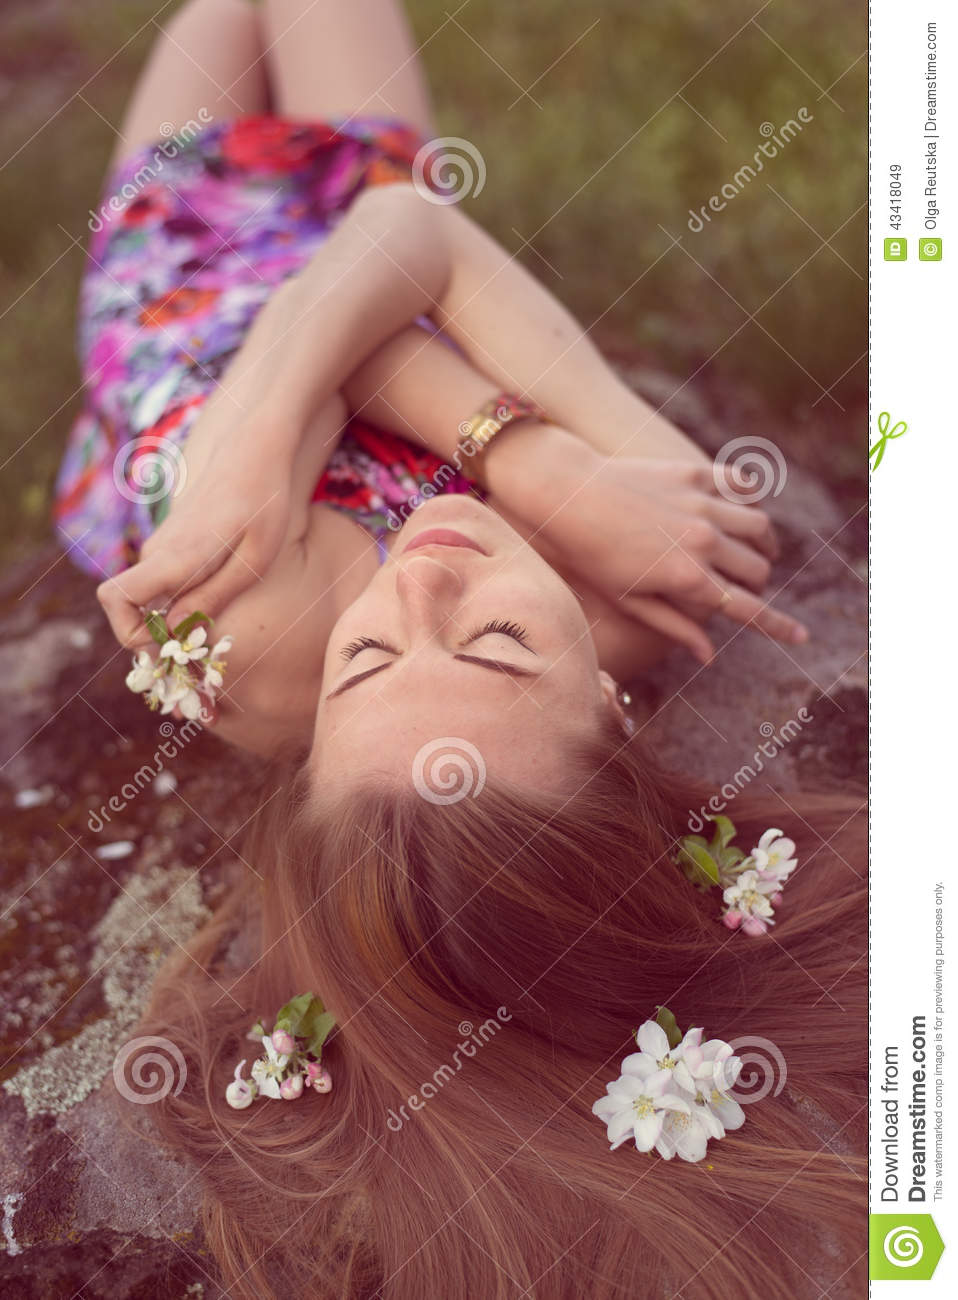 Close up portrait of beautiful blonde young woman laying on stone with flowers in her hair closing eyes dreaming outdoors